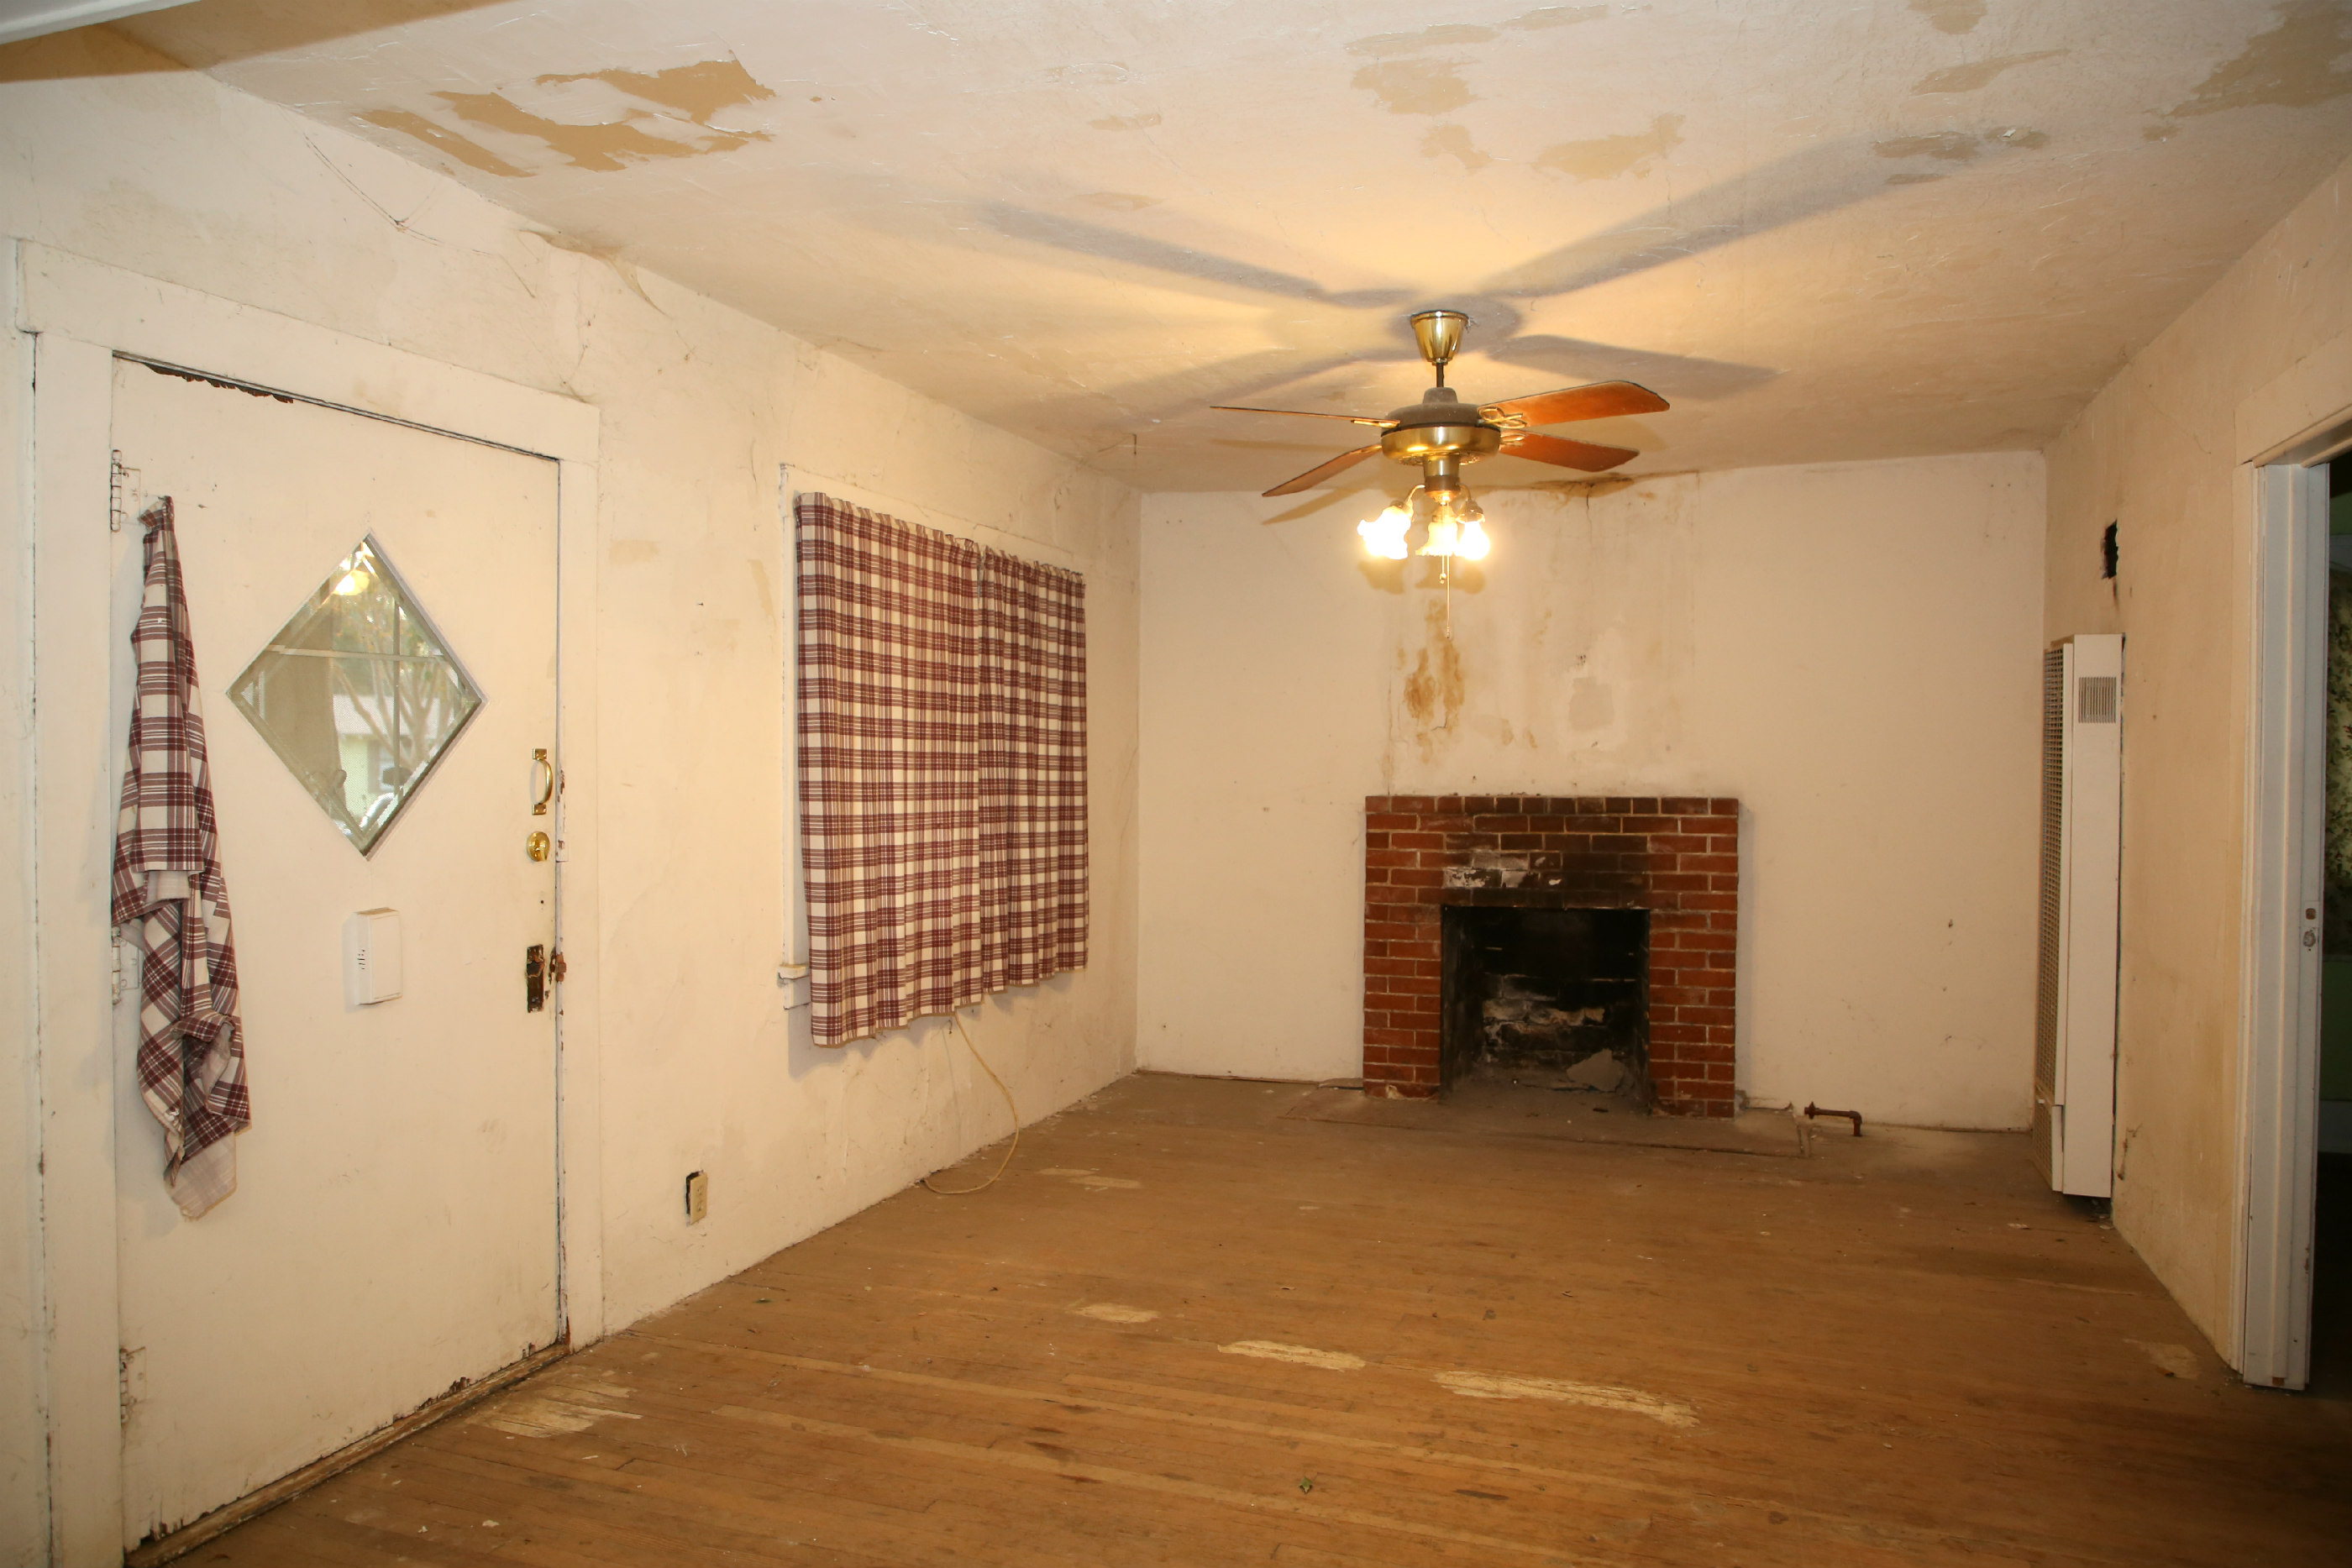 Living room with fireplace and wall heater.